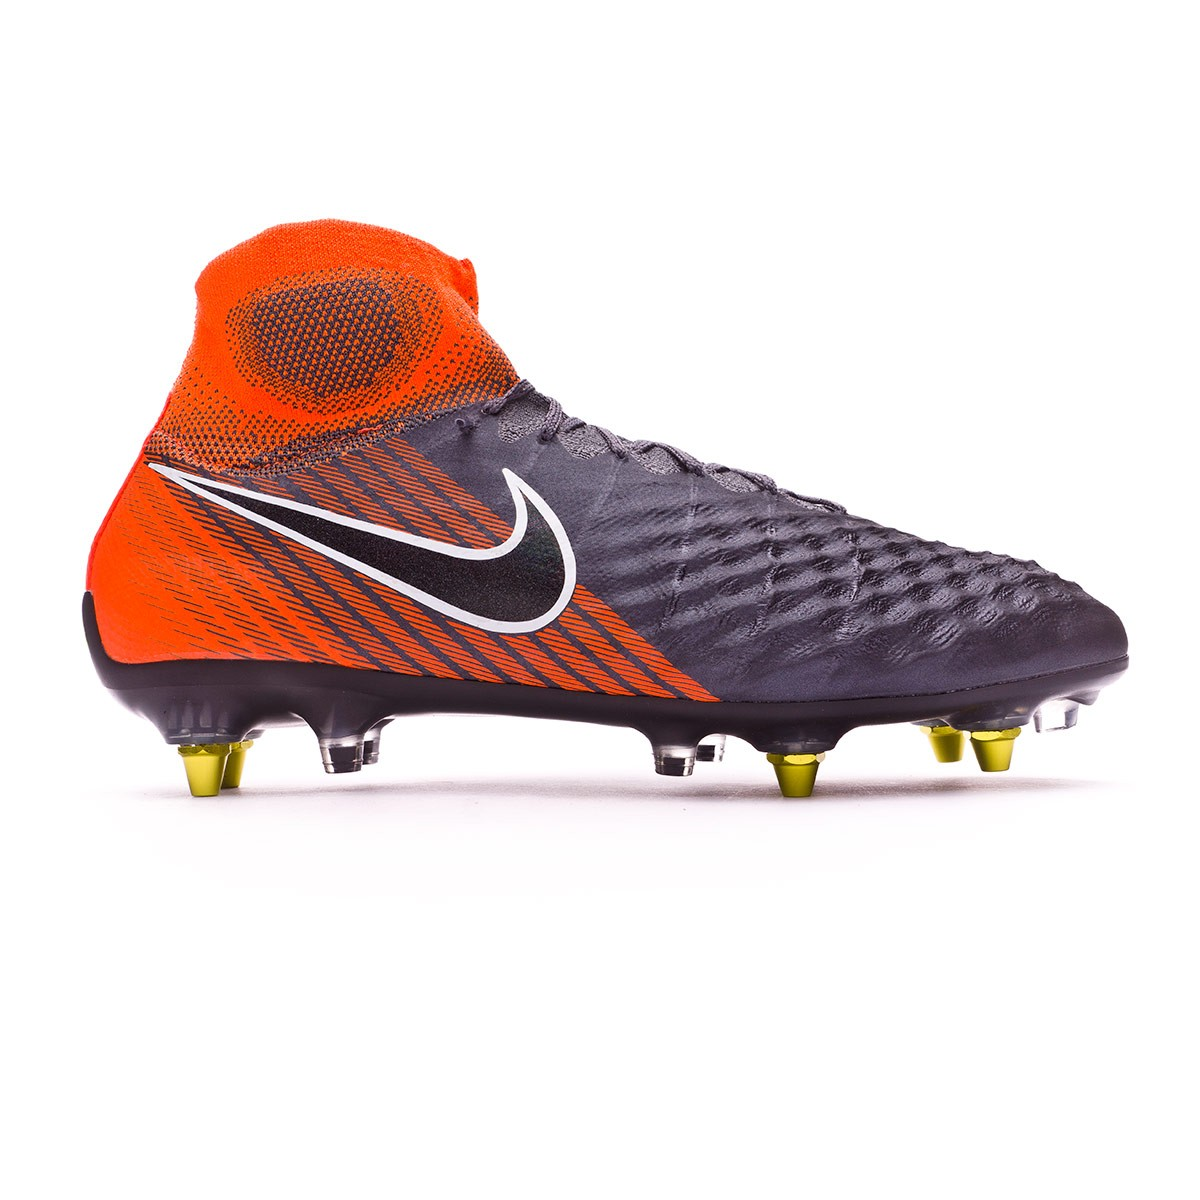 d28e29c2d4ca Football Boots Nike Magista Obra II Elite SG-Pro Anti-Clog Dark  grey-Black-Total orange-White - Football store Fútbol Emotion